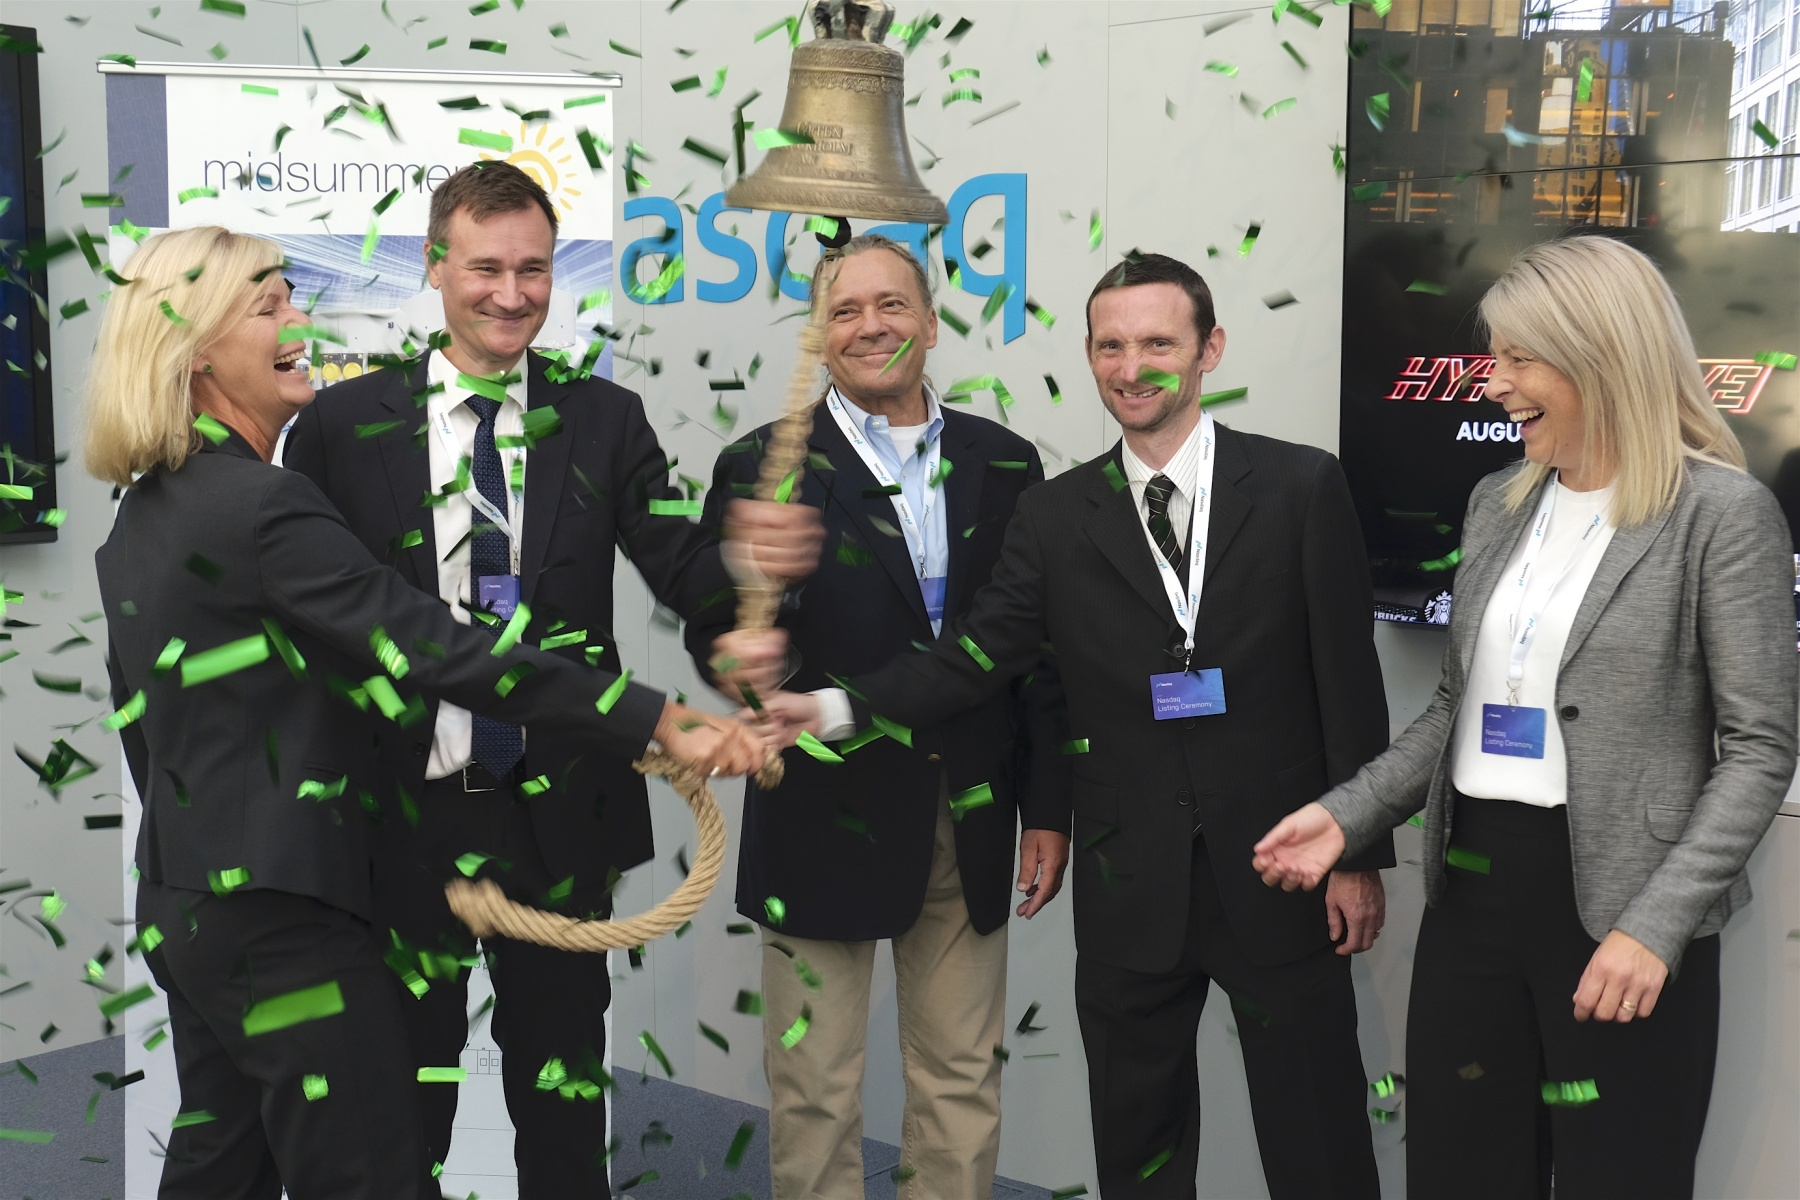 Trading of the green bond, which was issued on 25 April 2019 with an amount of US$20.6 million, has now started on the Sustainable Bond List of Nasdaq Stockholm. Image: Midsummer